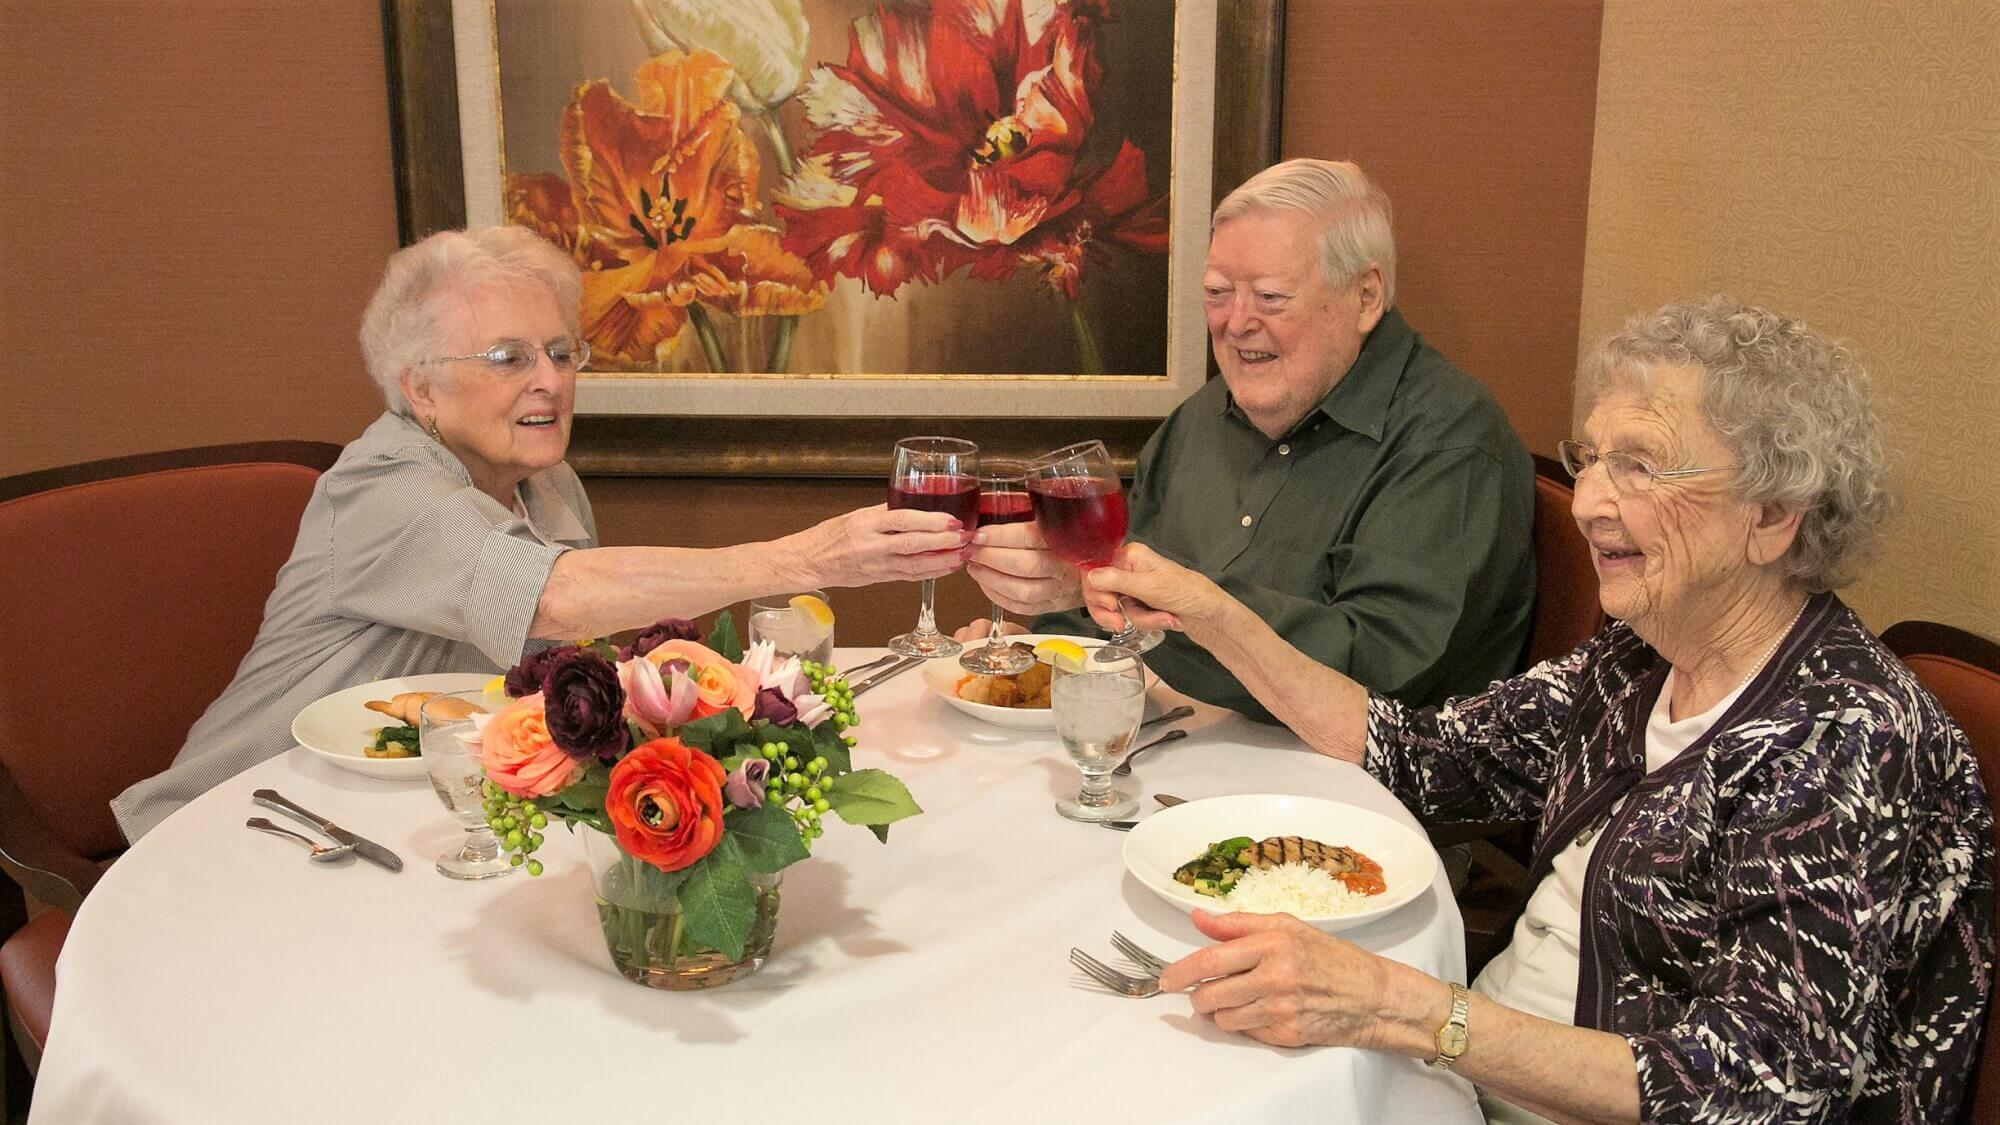 Senior friends dining together, cheering their glasses.